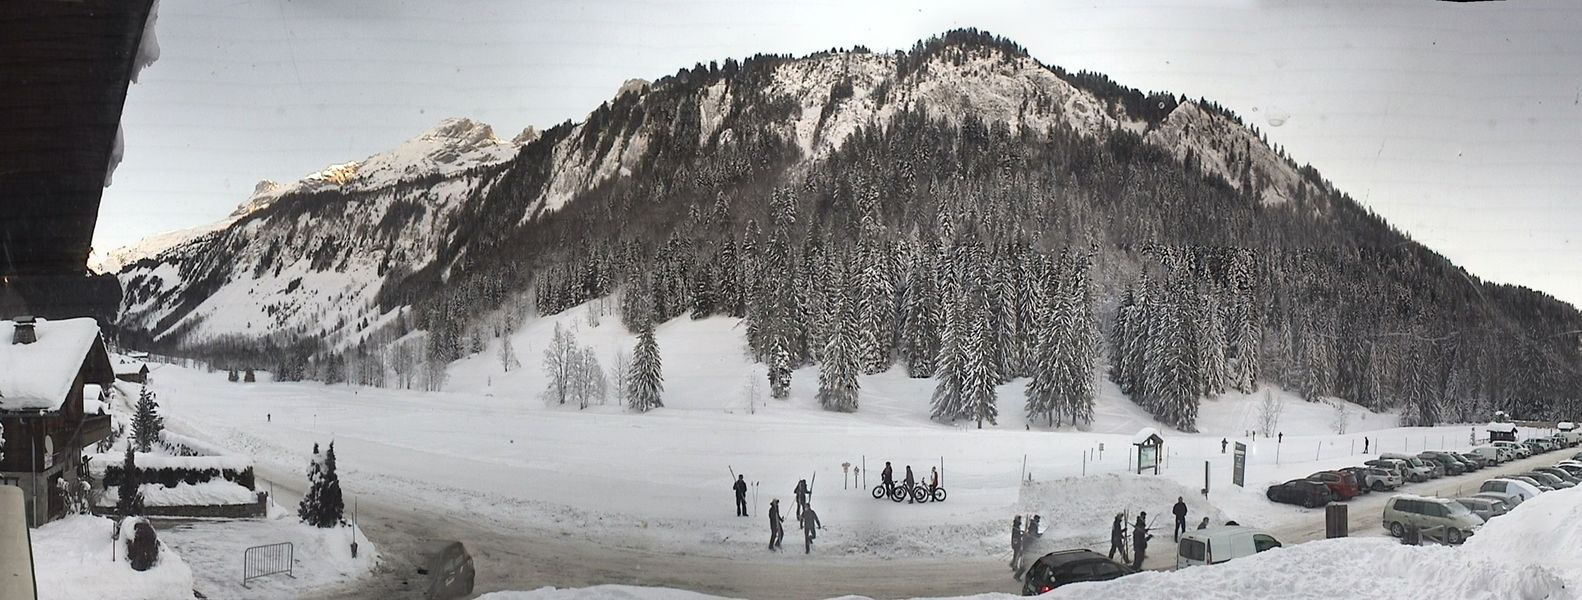 webcam Le Grand-Bornand